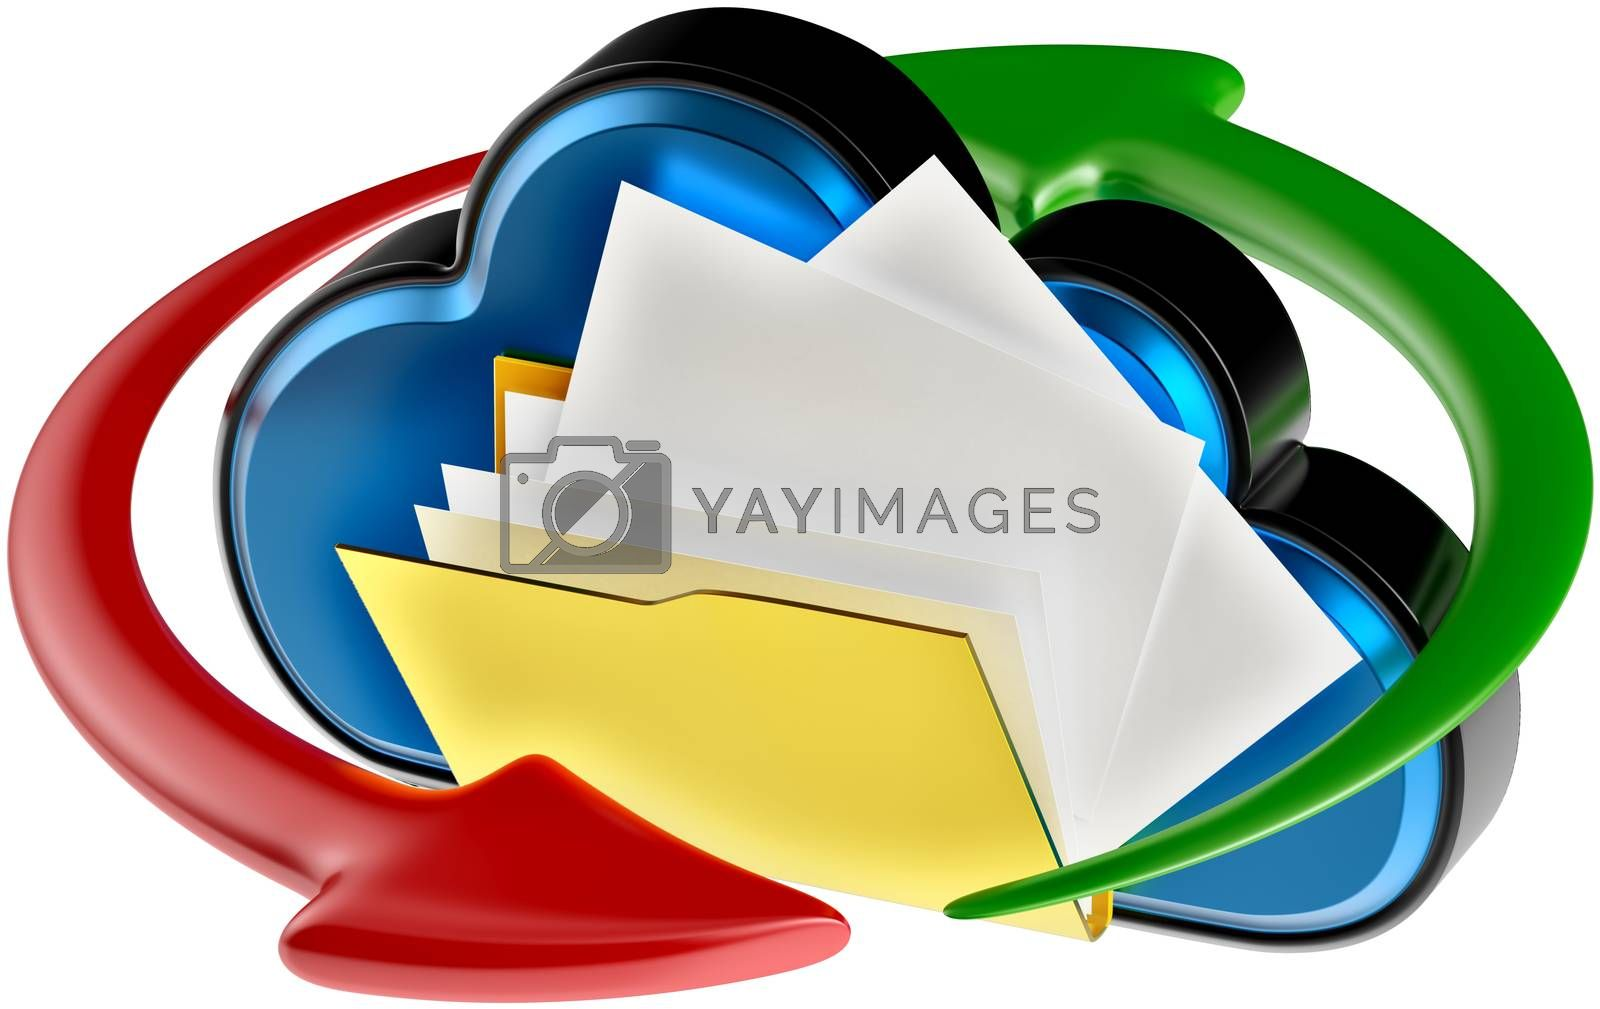 concept of cloud computing and circulation digital documents as is blue glossy cloud icon with folder and documents on white background